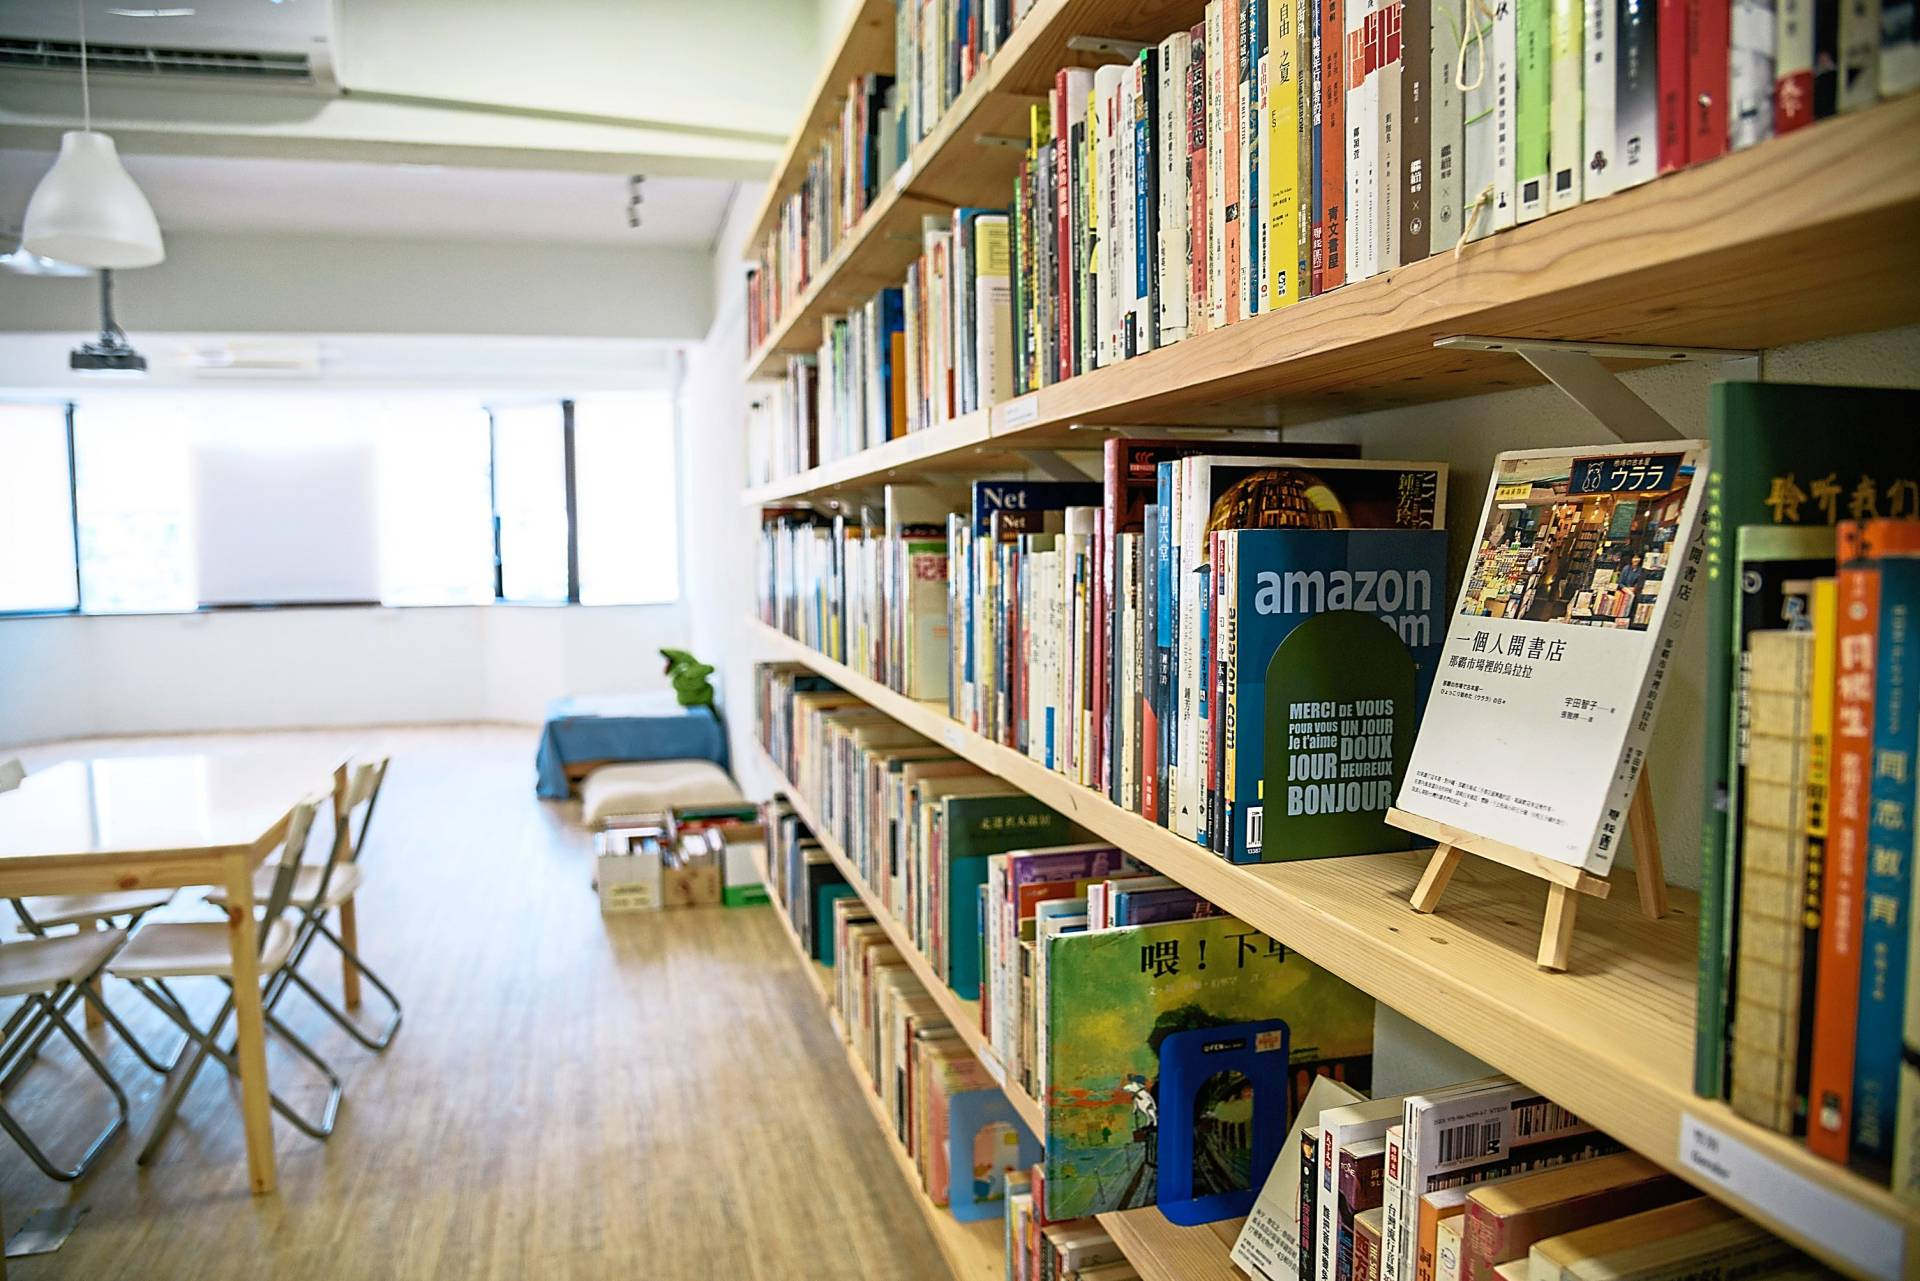 Ruang Kongsi has over 1,200 books. The library is aimed at promoting life-long learning beyond the traditional school system. Photo: Ruang Kongsi